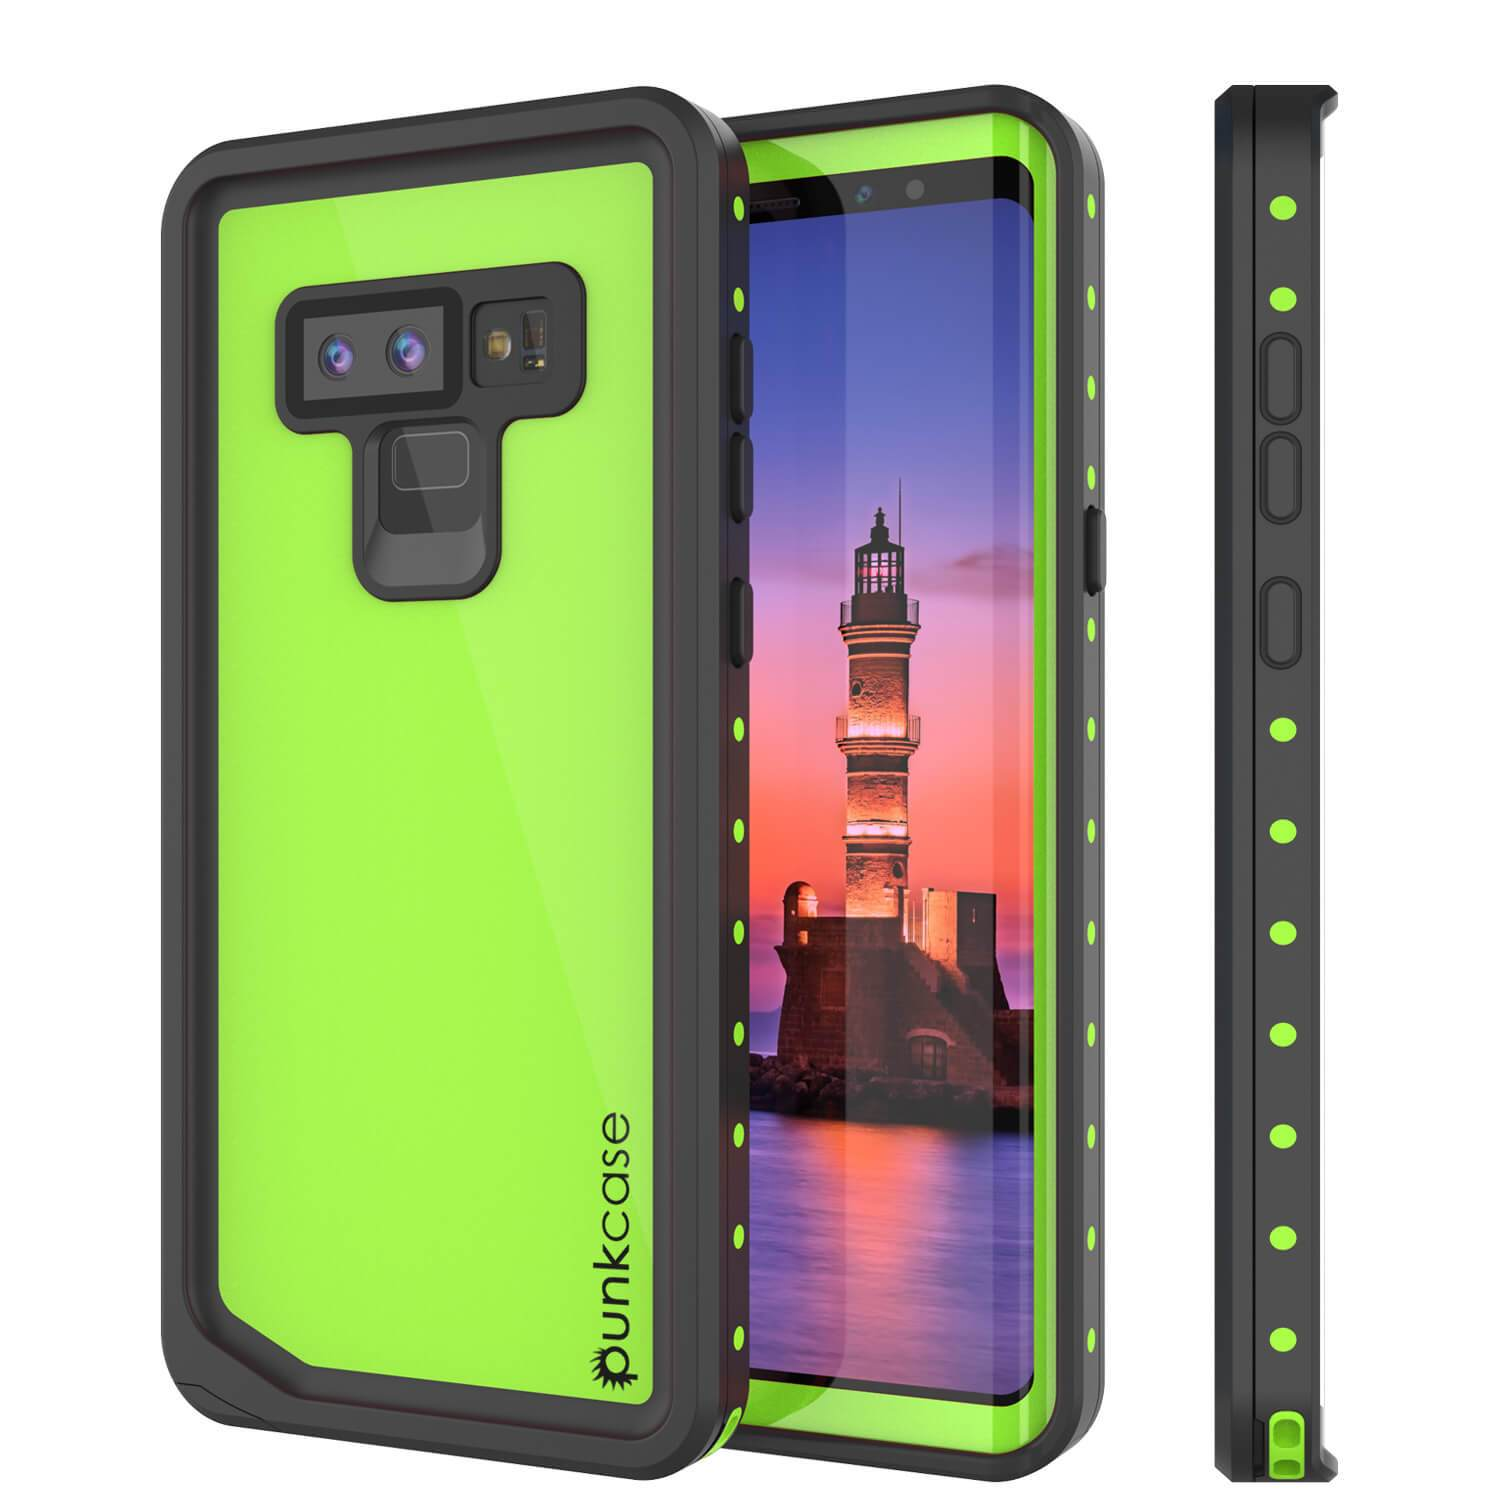 Galaxy Note 9 Waterproof Case PunkCase StudStar Light Green Thin 6.6ft Underwater ShockProof